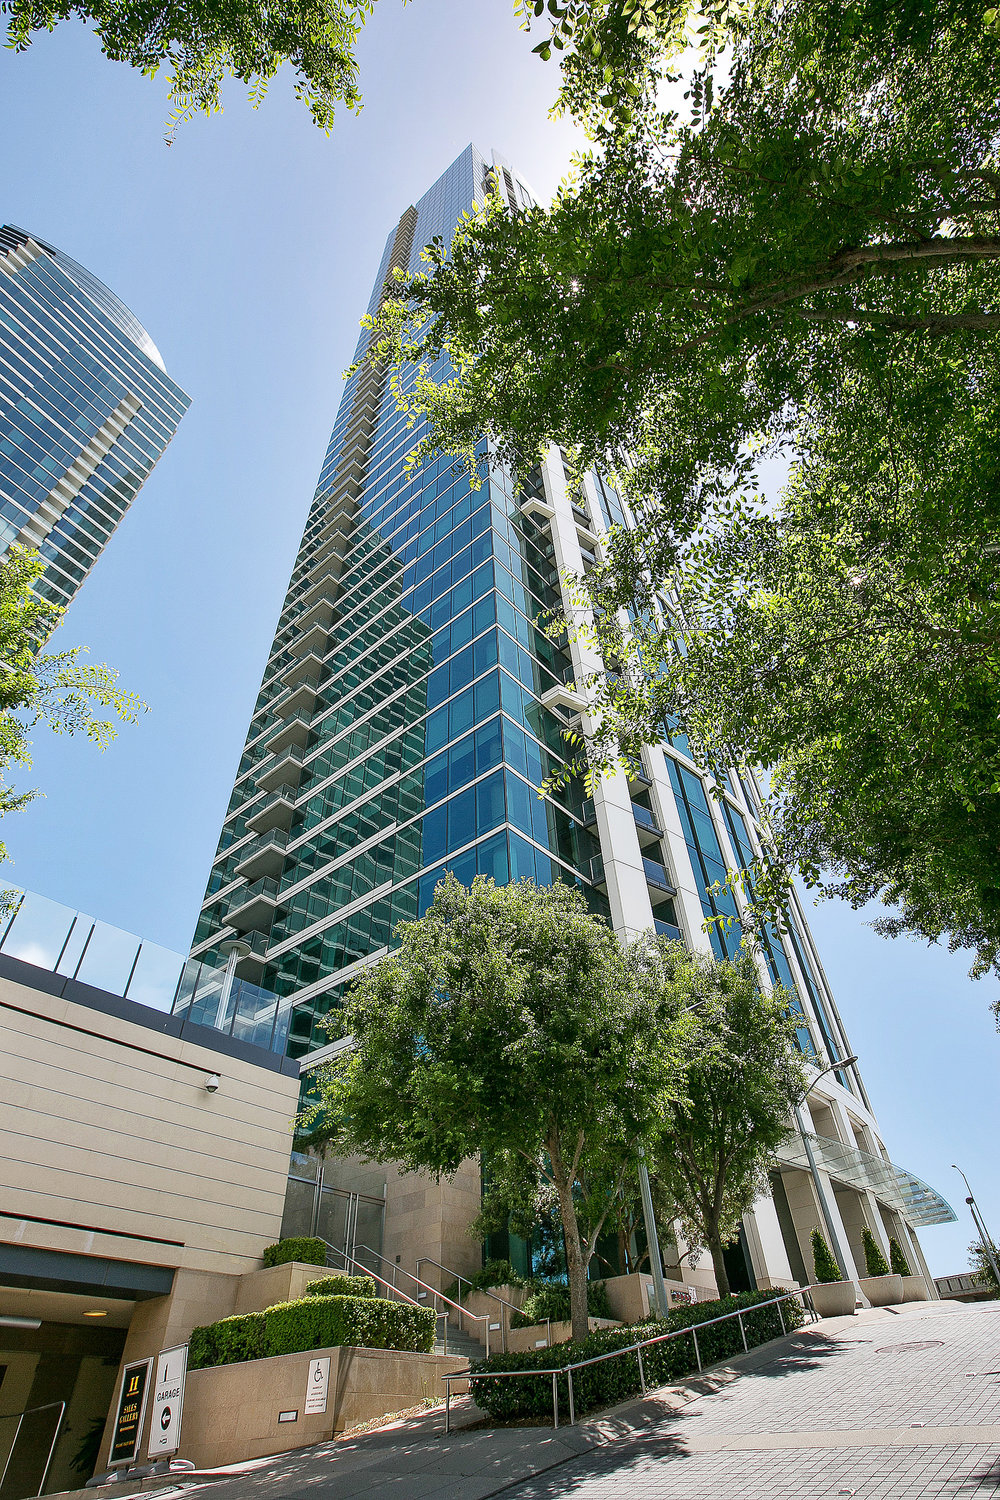 OFF MARKET-ONE RINCON HILL  Represented Seller: $1,100,000